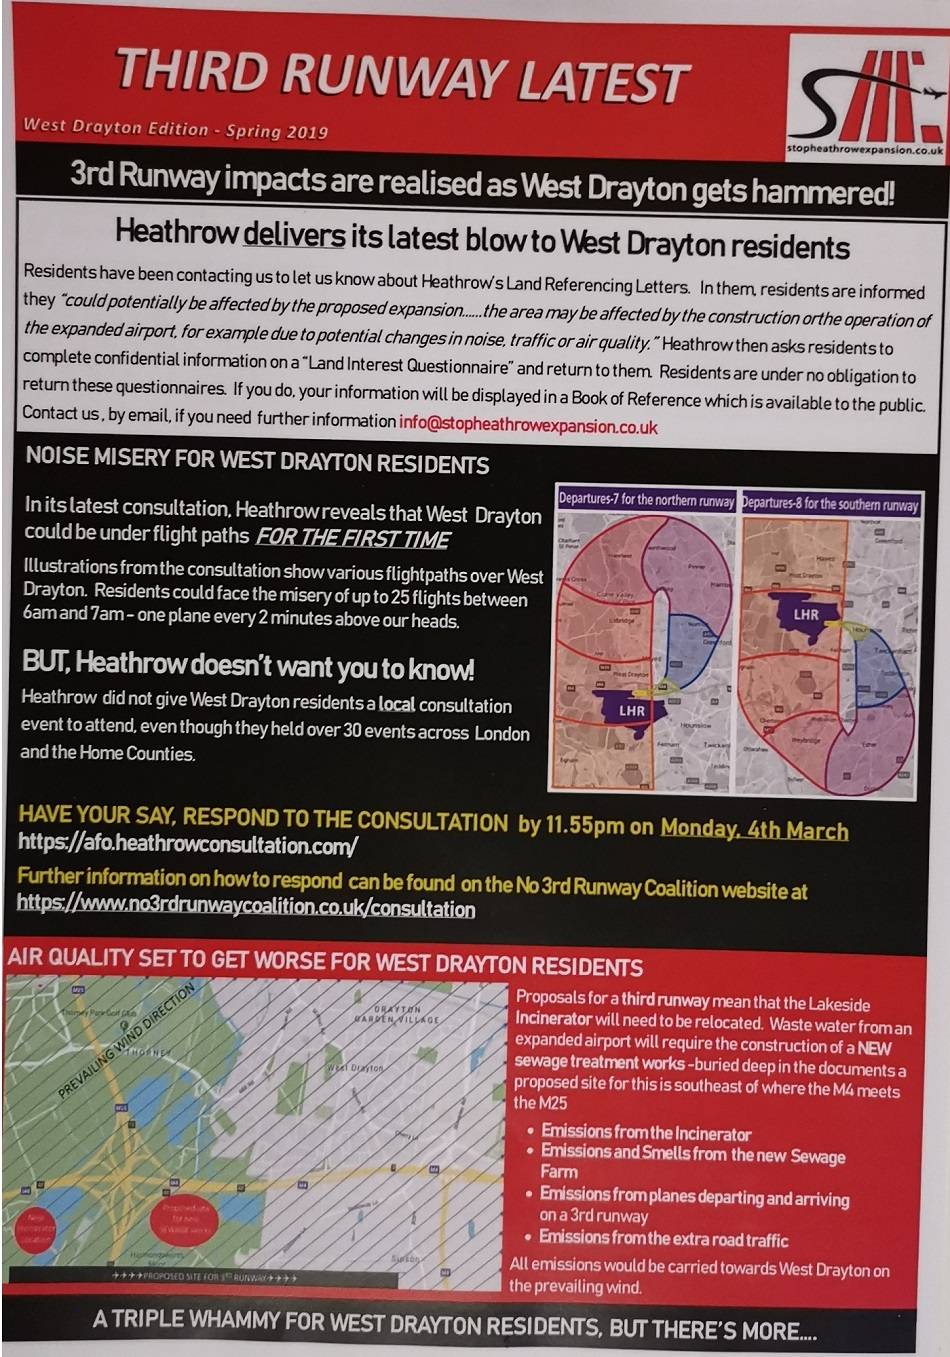 3rd Runway impacts are realised as West Drayton gets hammered!